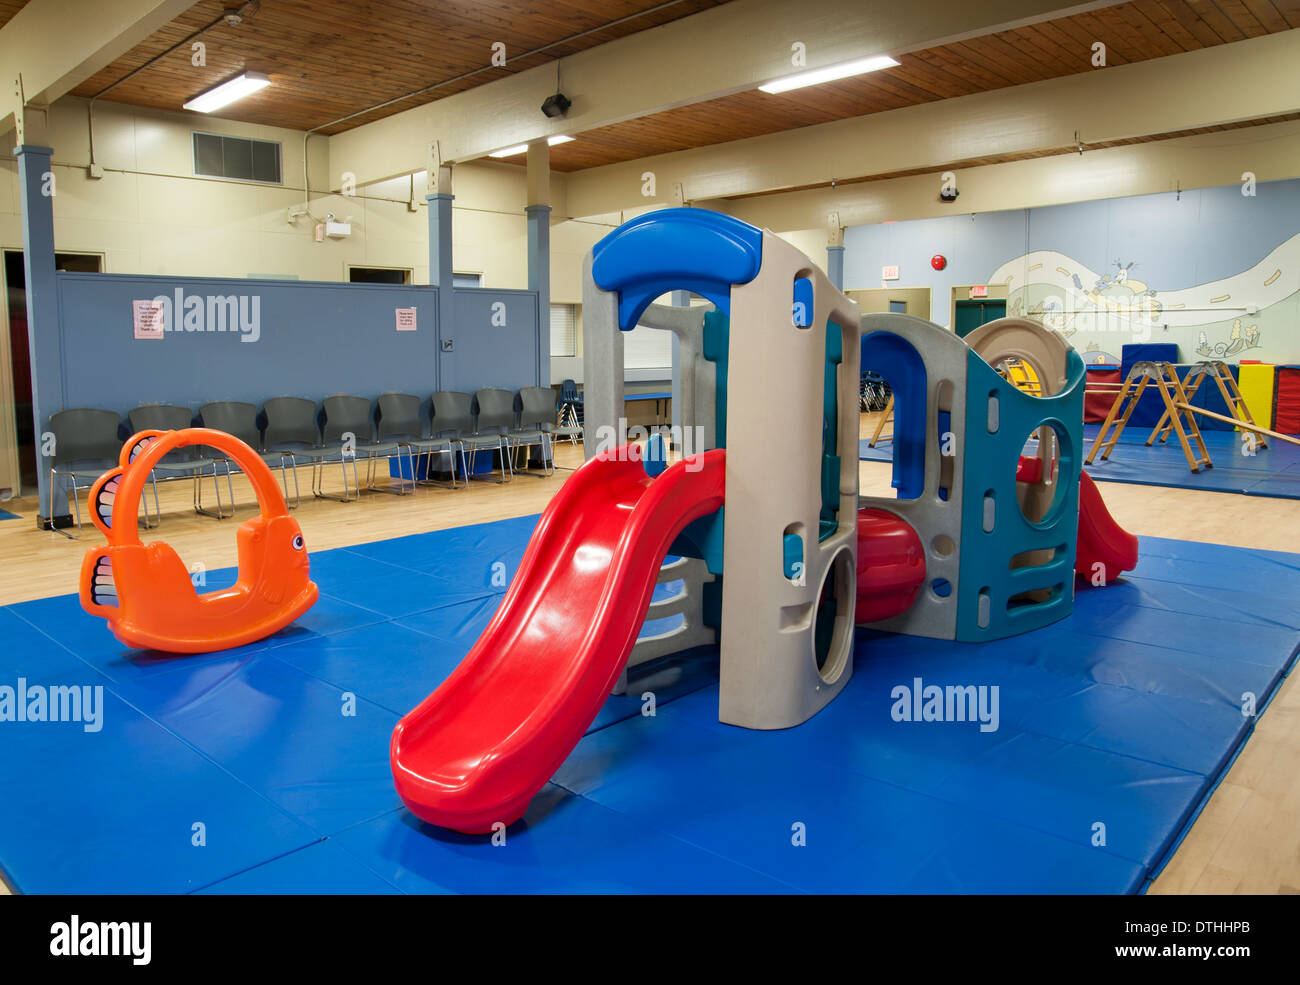 Slide and playground equipment indoors at a daycare centre - Stock Image